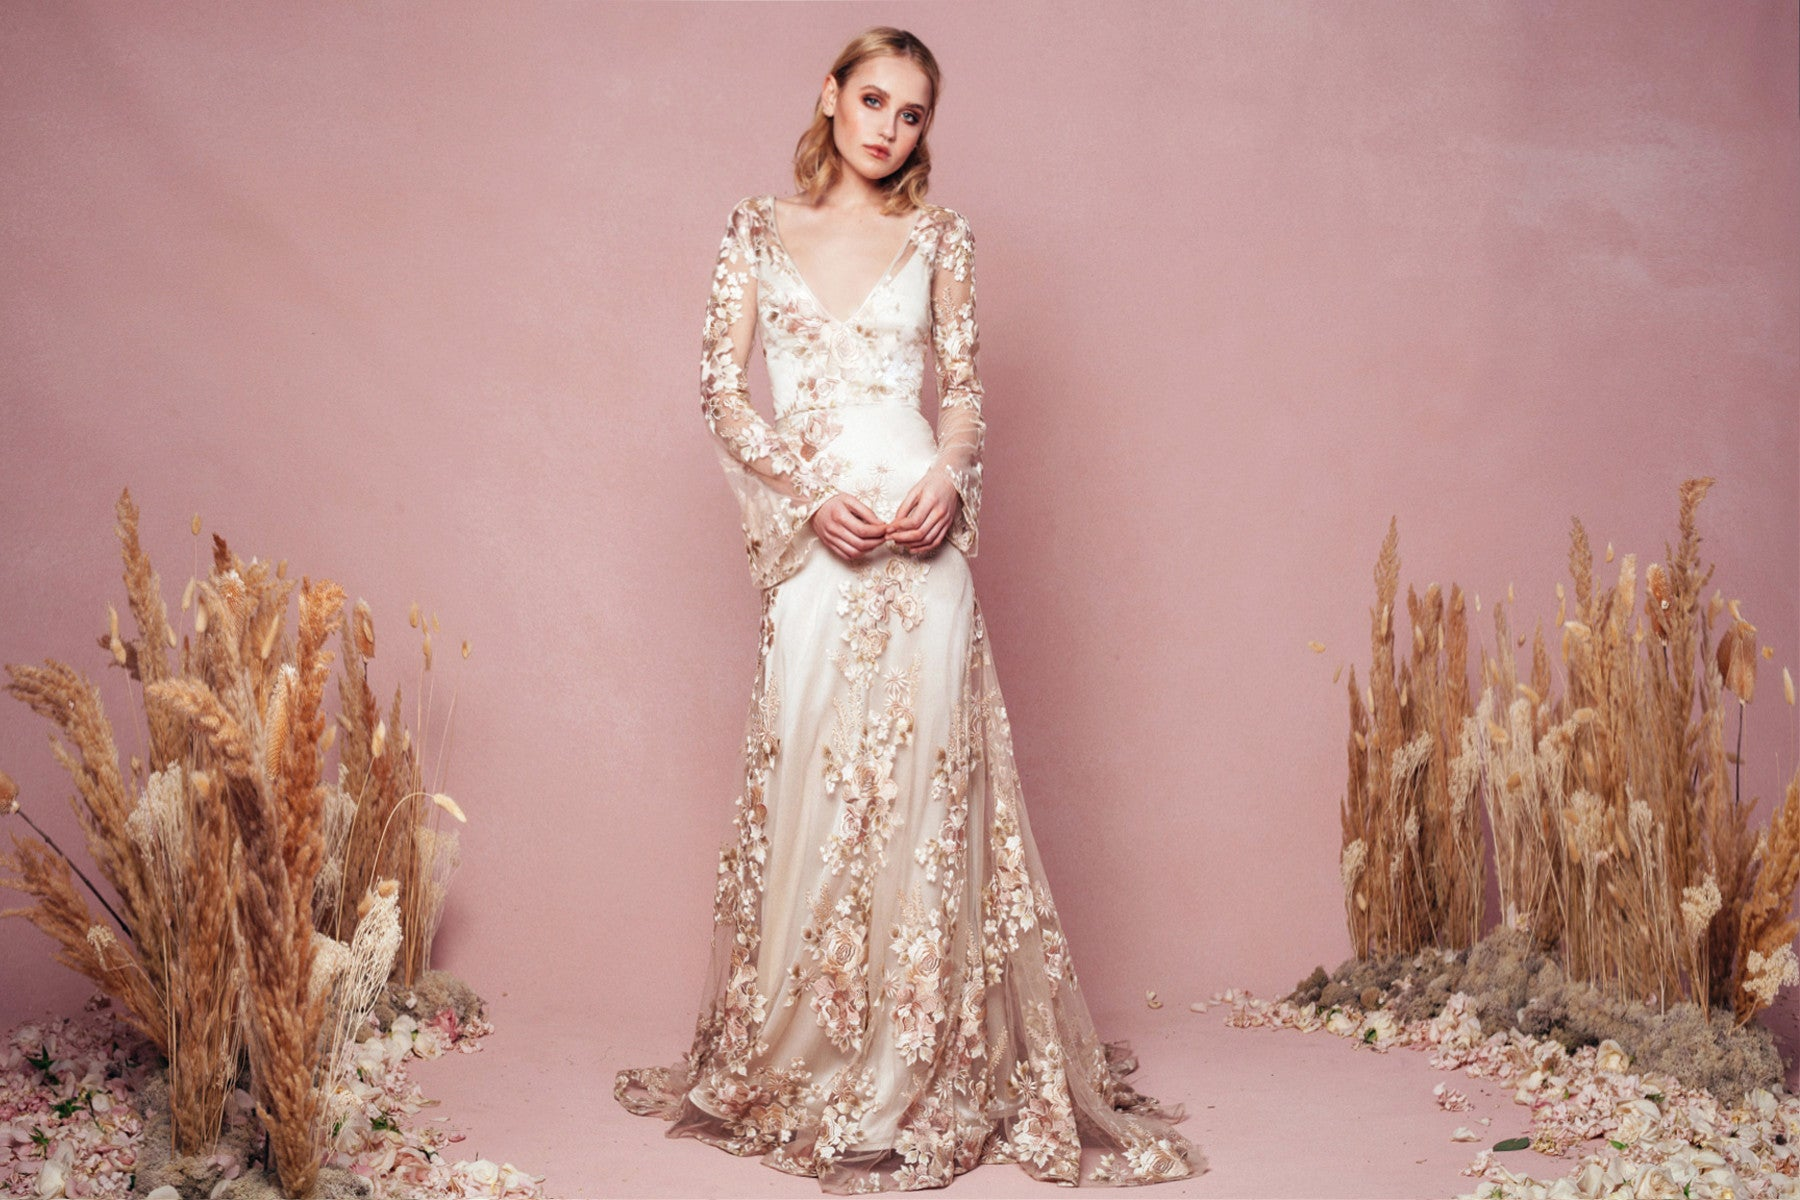 THE ALYSE GOWN – Odylyne the Ceremony